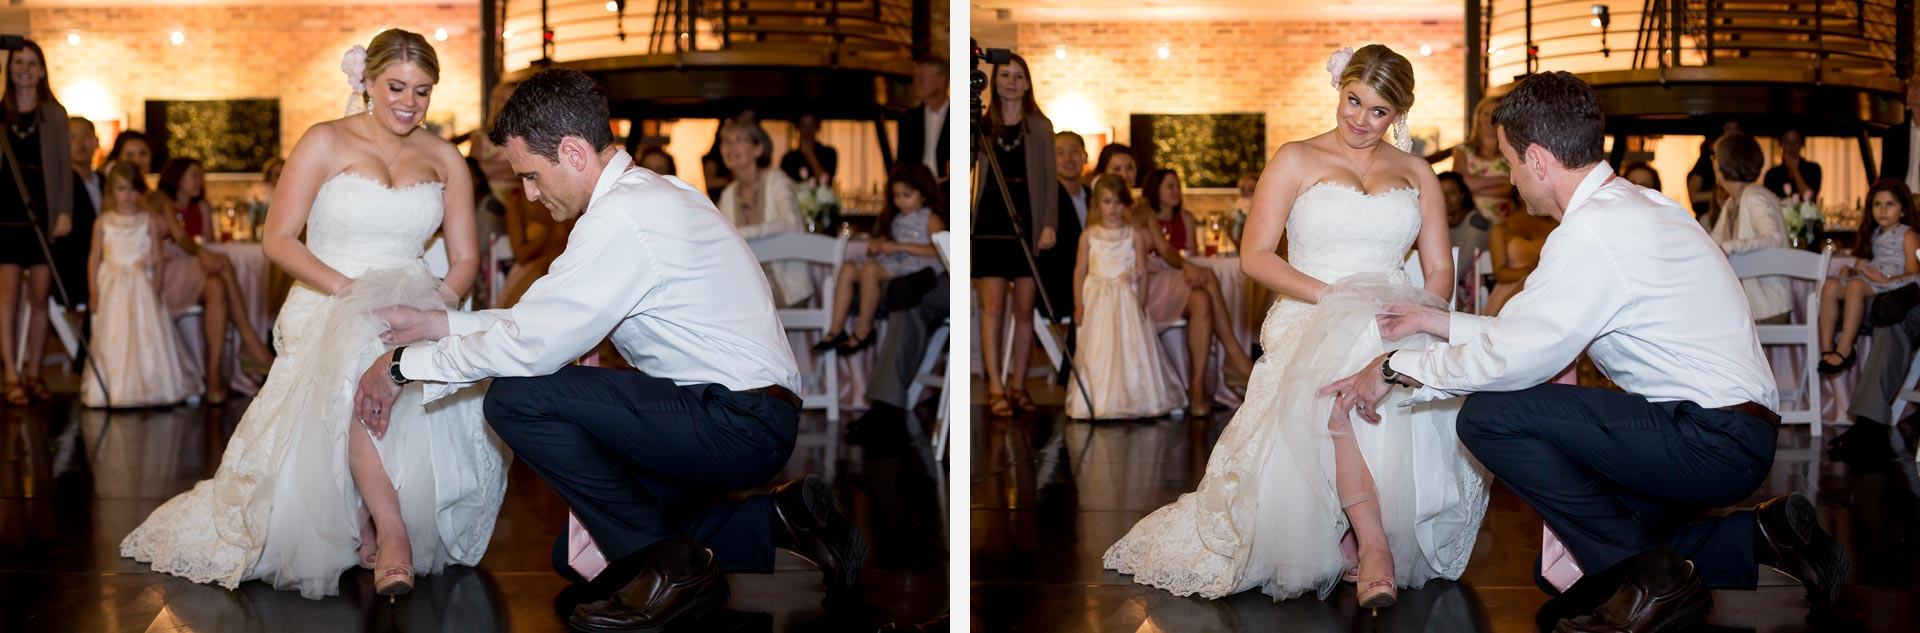 Best Texas Wedding Photographers